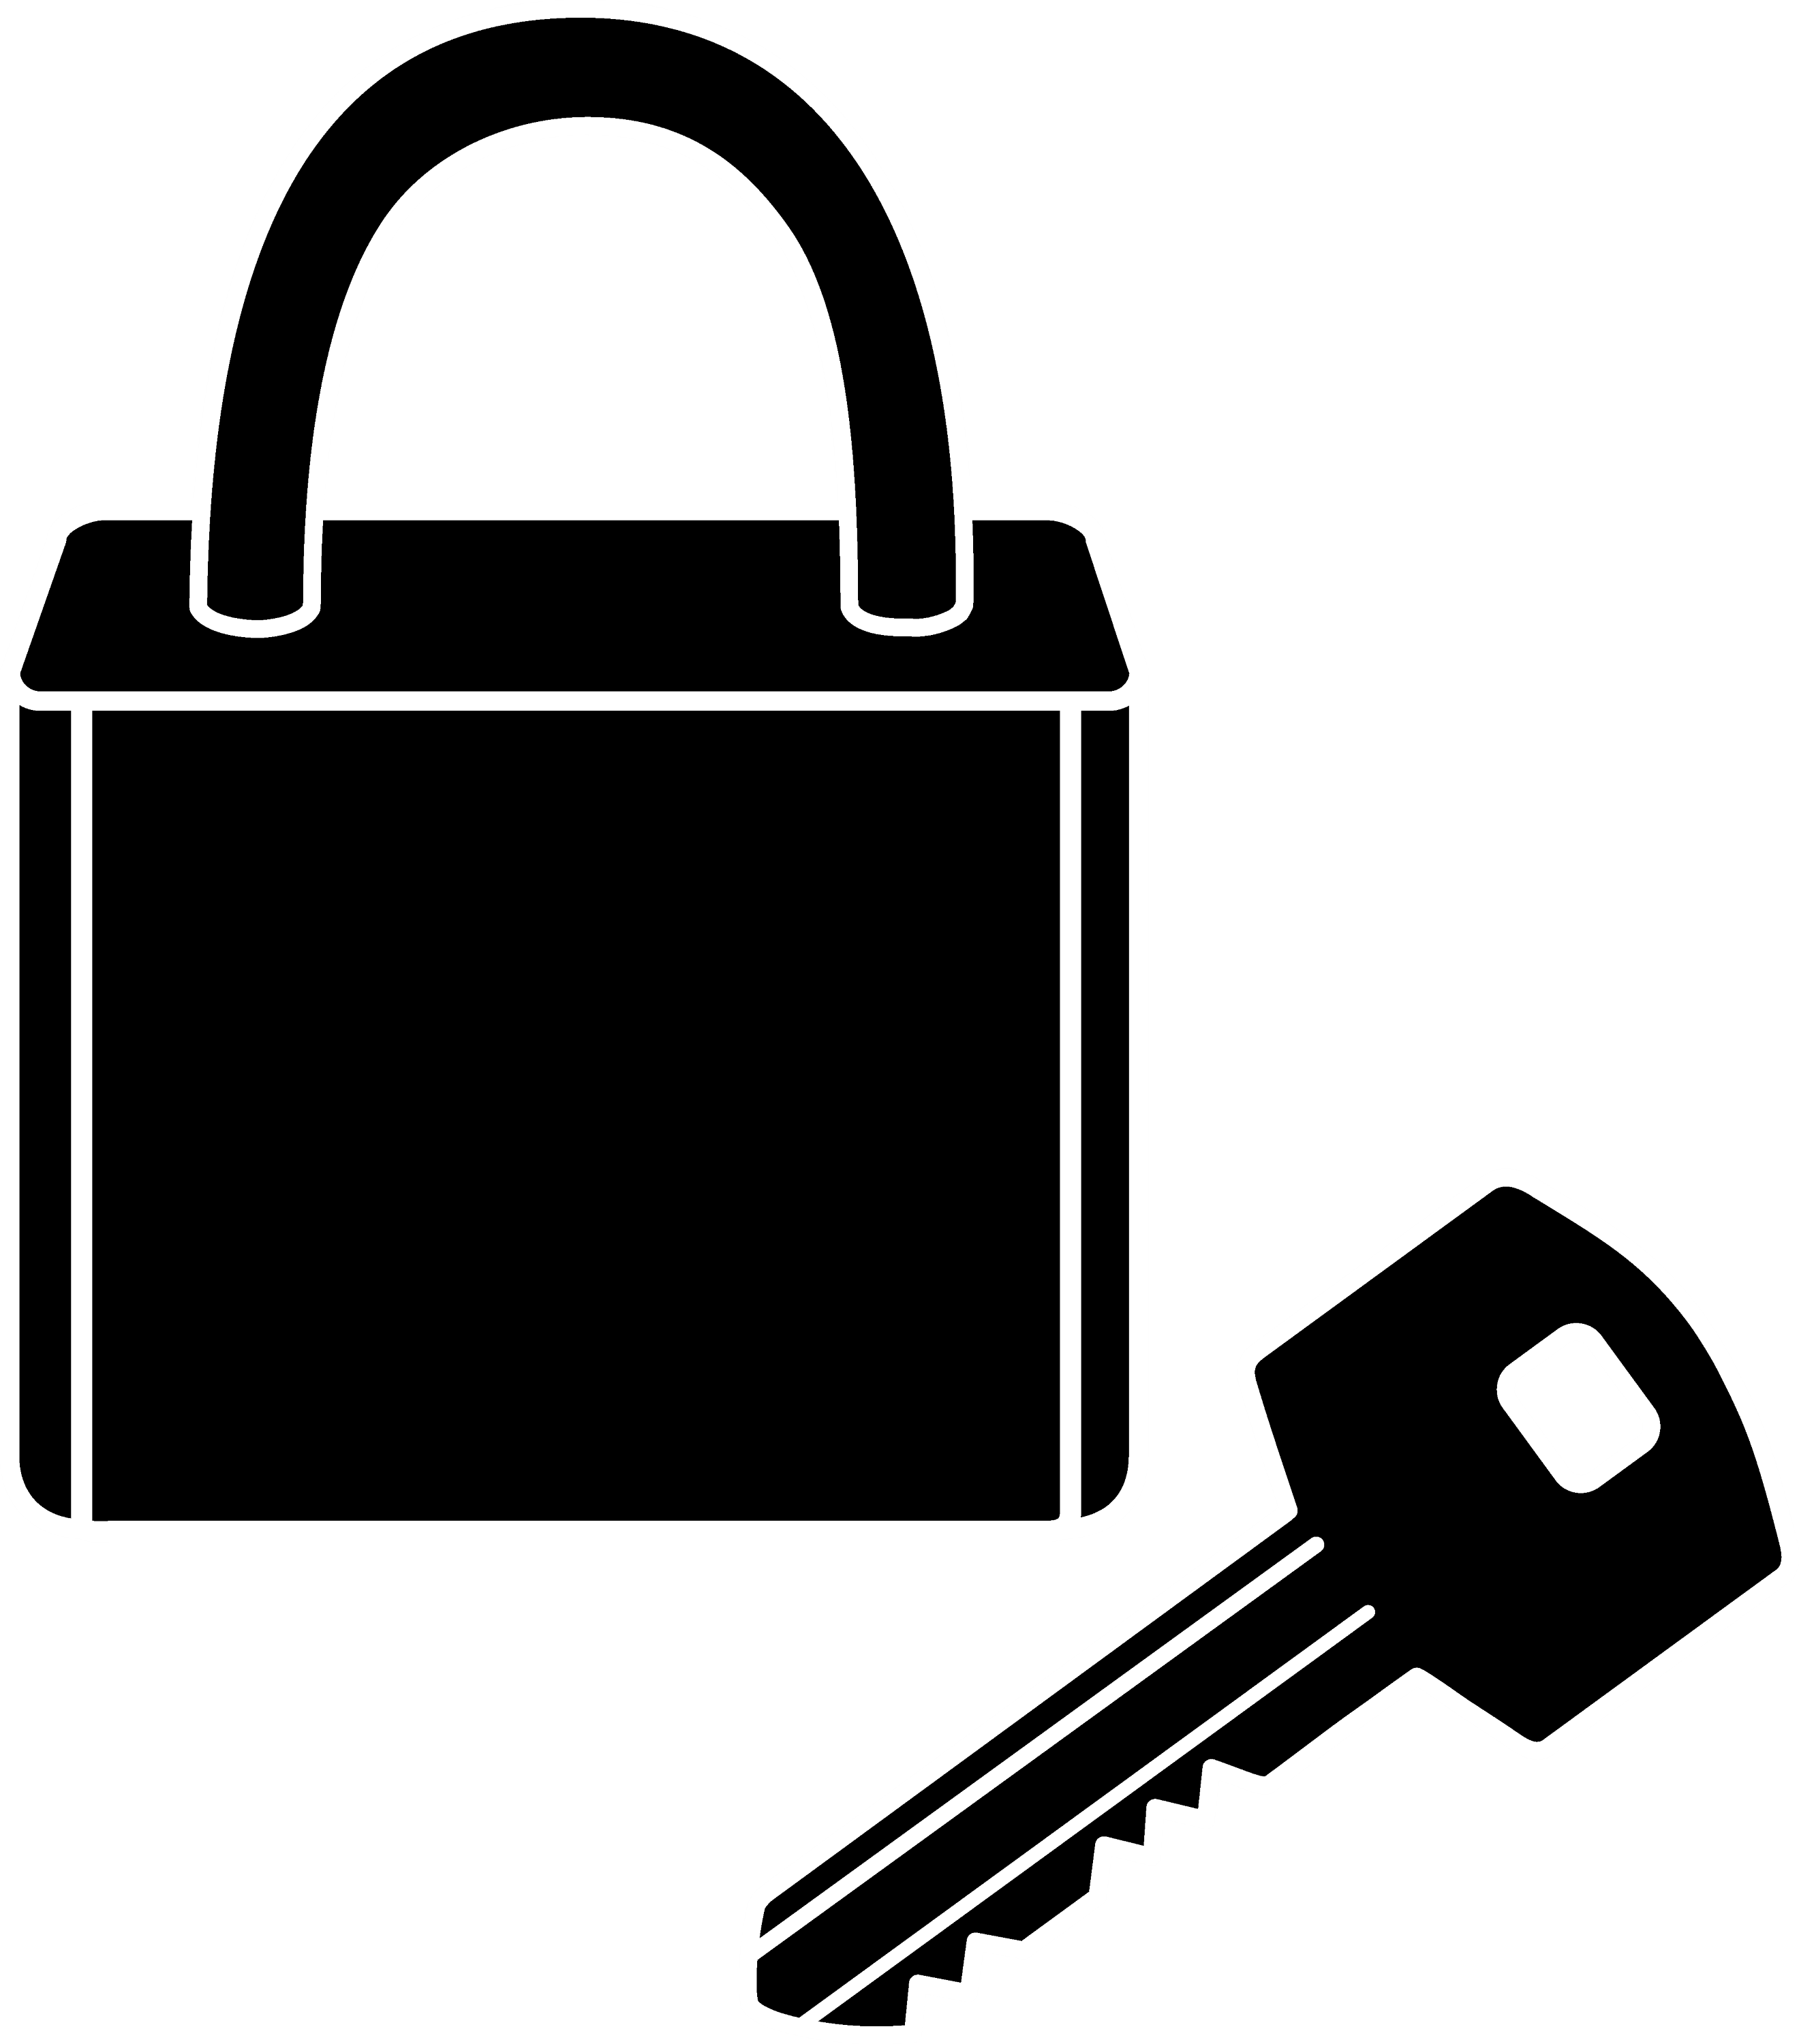 Lock and Key Silhouette - Free Clip Art for Lock And Key Clipart Black And White  21ane